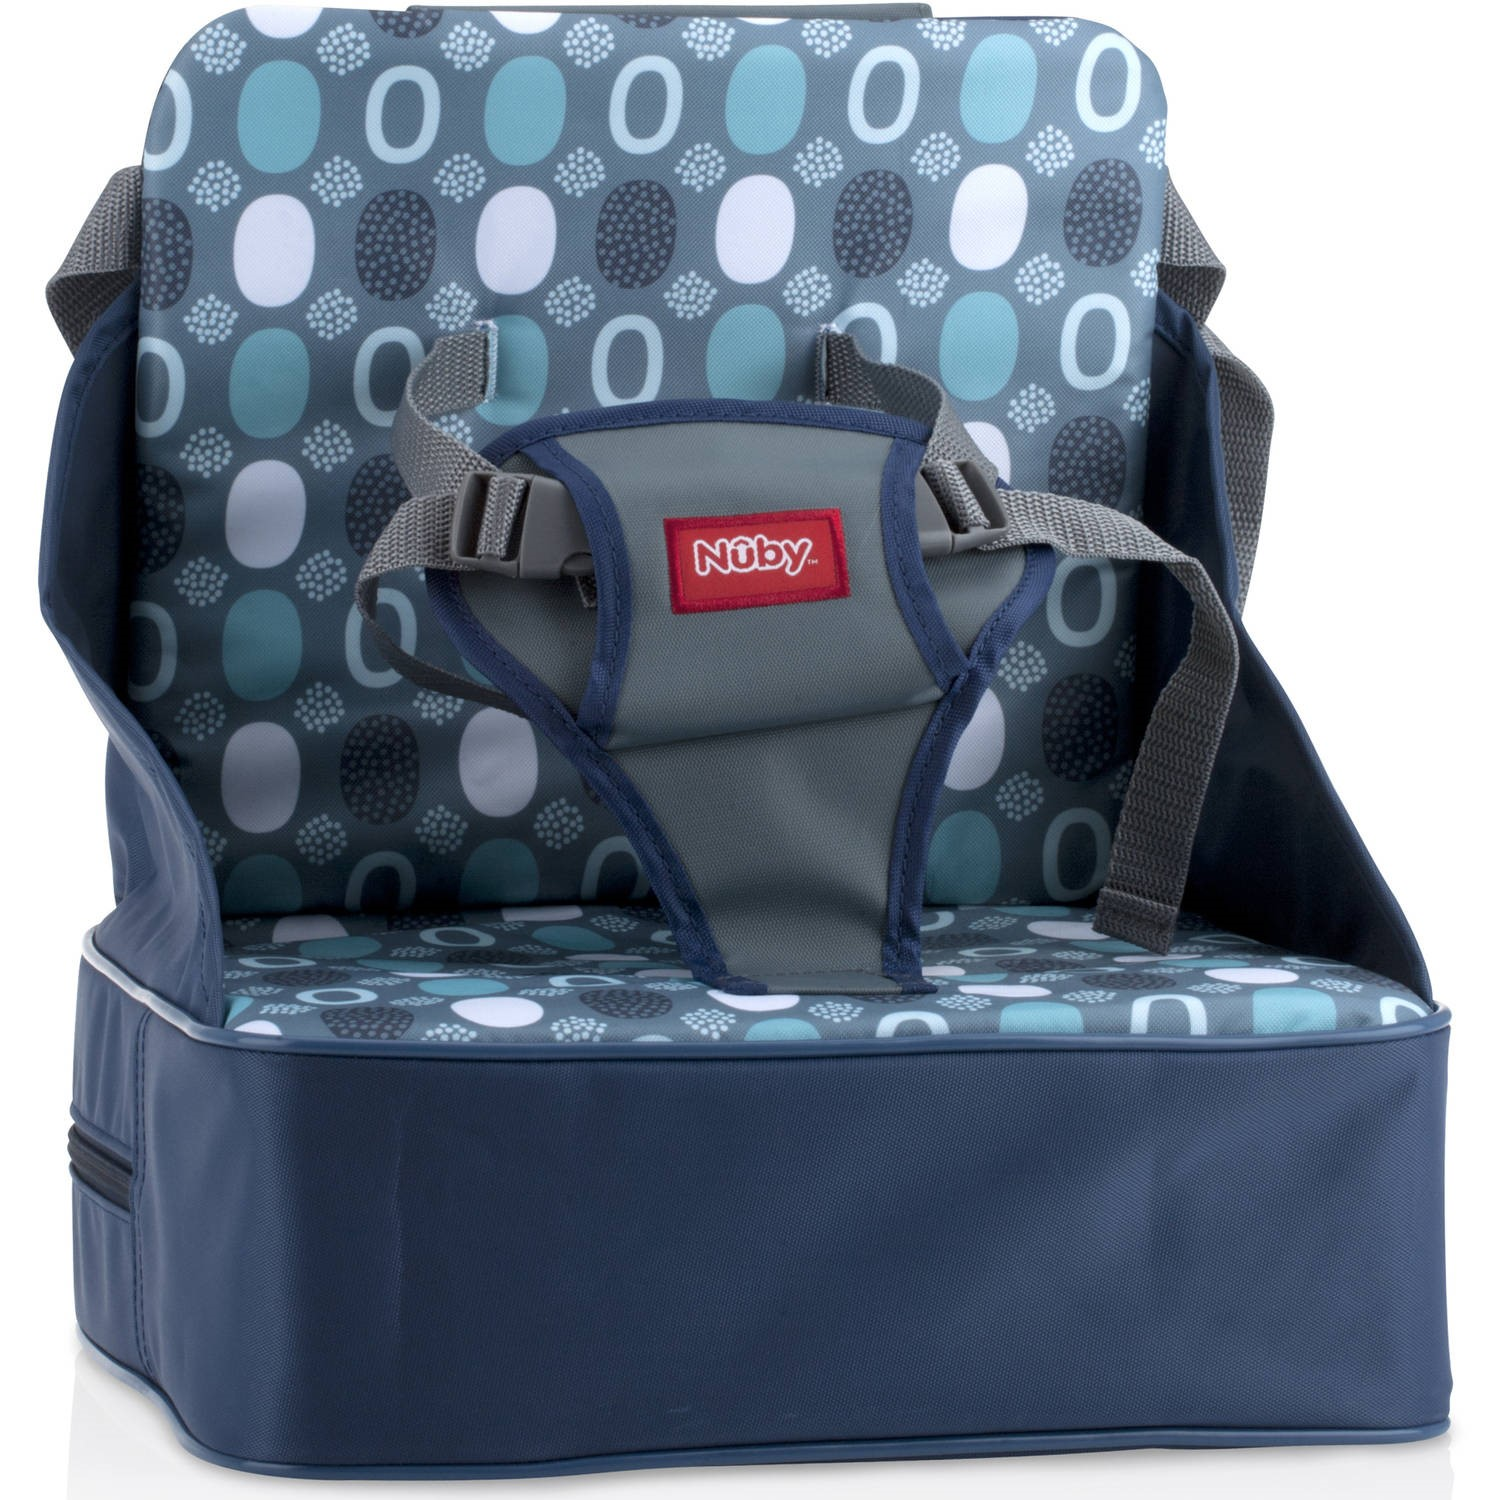 Nuby Fabric Booster Sea, Blue